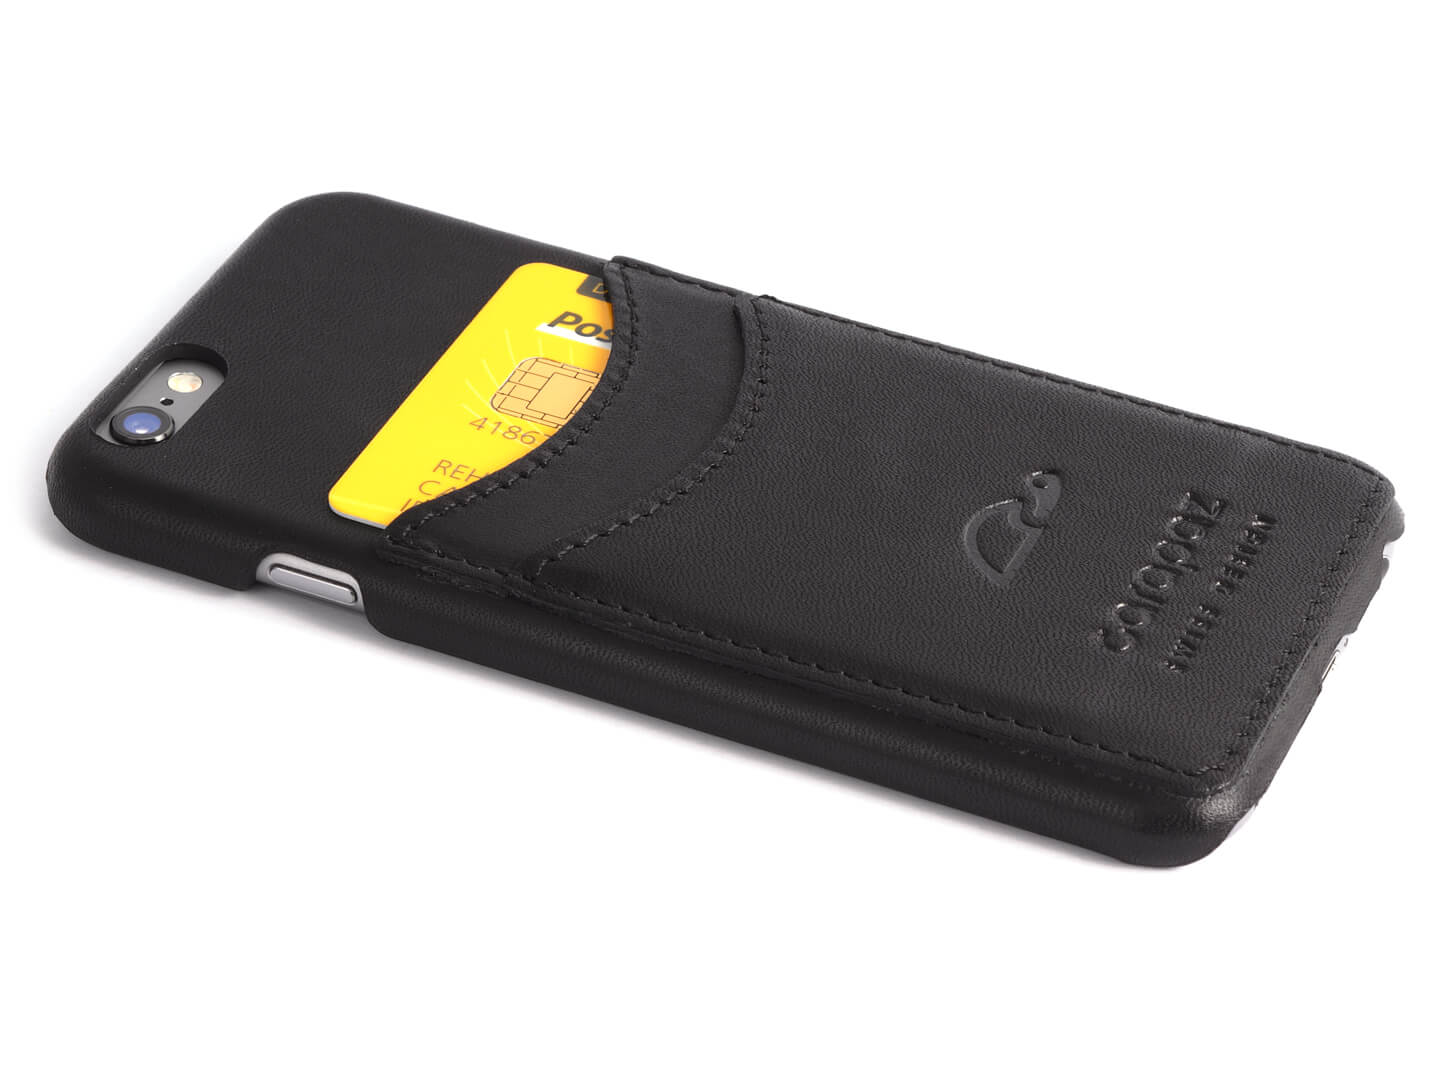 huge discount fca53 9f01b iPHONE 6 / 6 PLUS SLIM CASE + SCREEN PROTECTION - BLACK